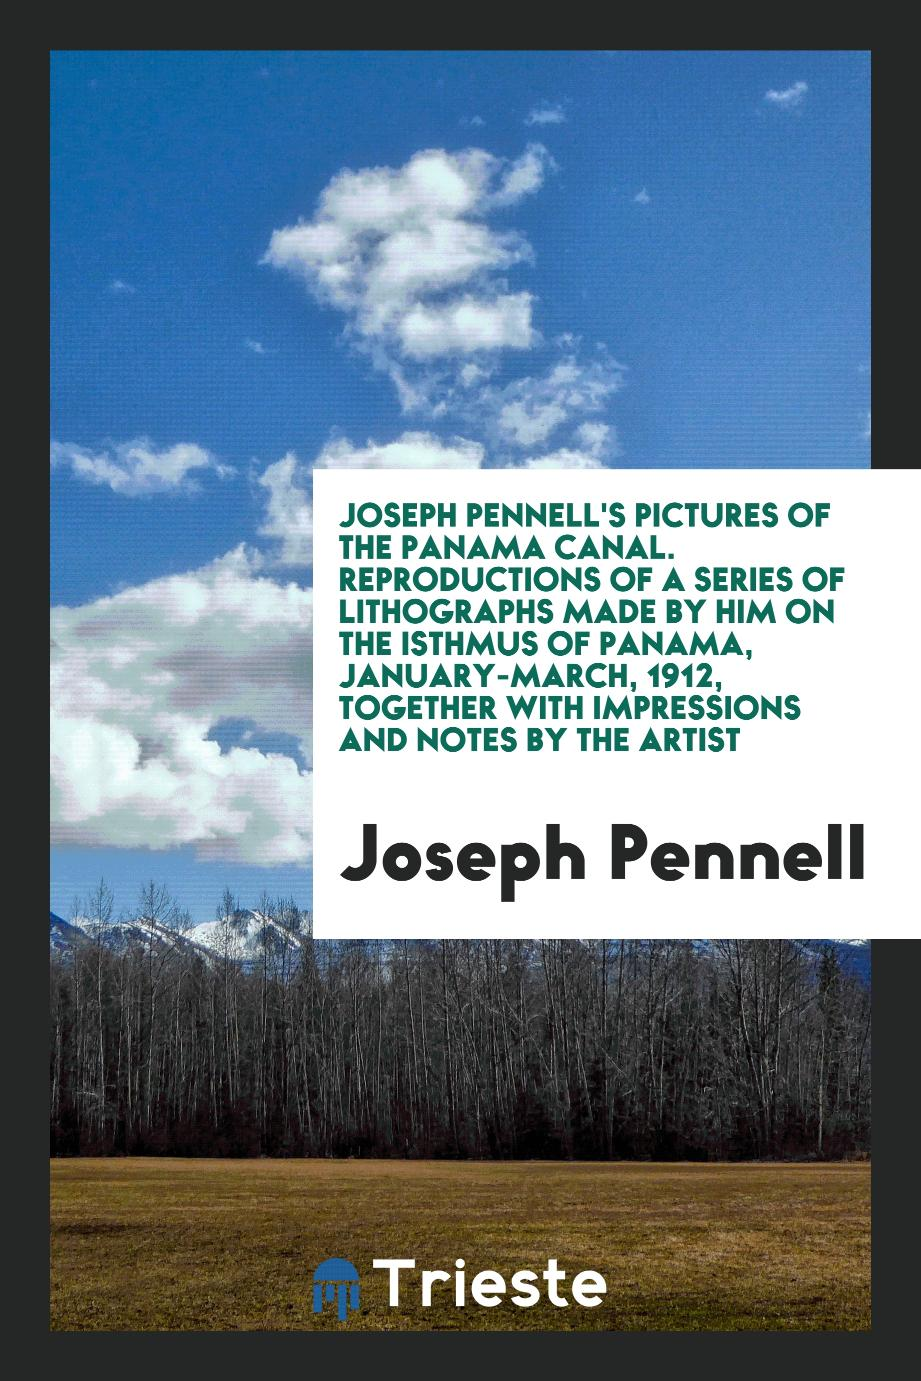 Joseph Pennell's Pictures of the Panama Canal. Reproductions of a Series of Lithographs Made by Him on the Isthmus of Panama, January-March, 1912, Together with Impressions and Notes by the Artist